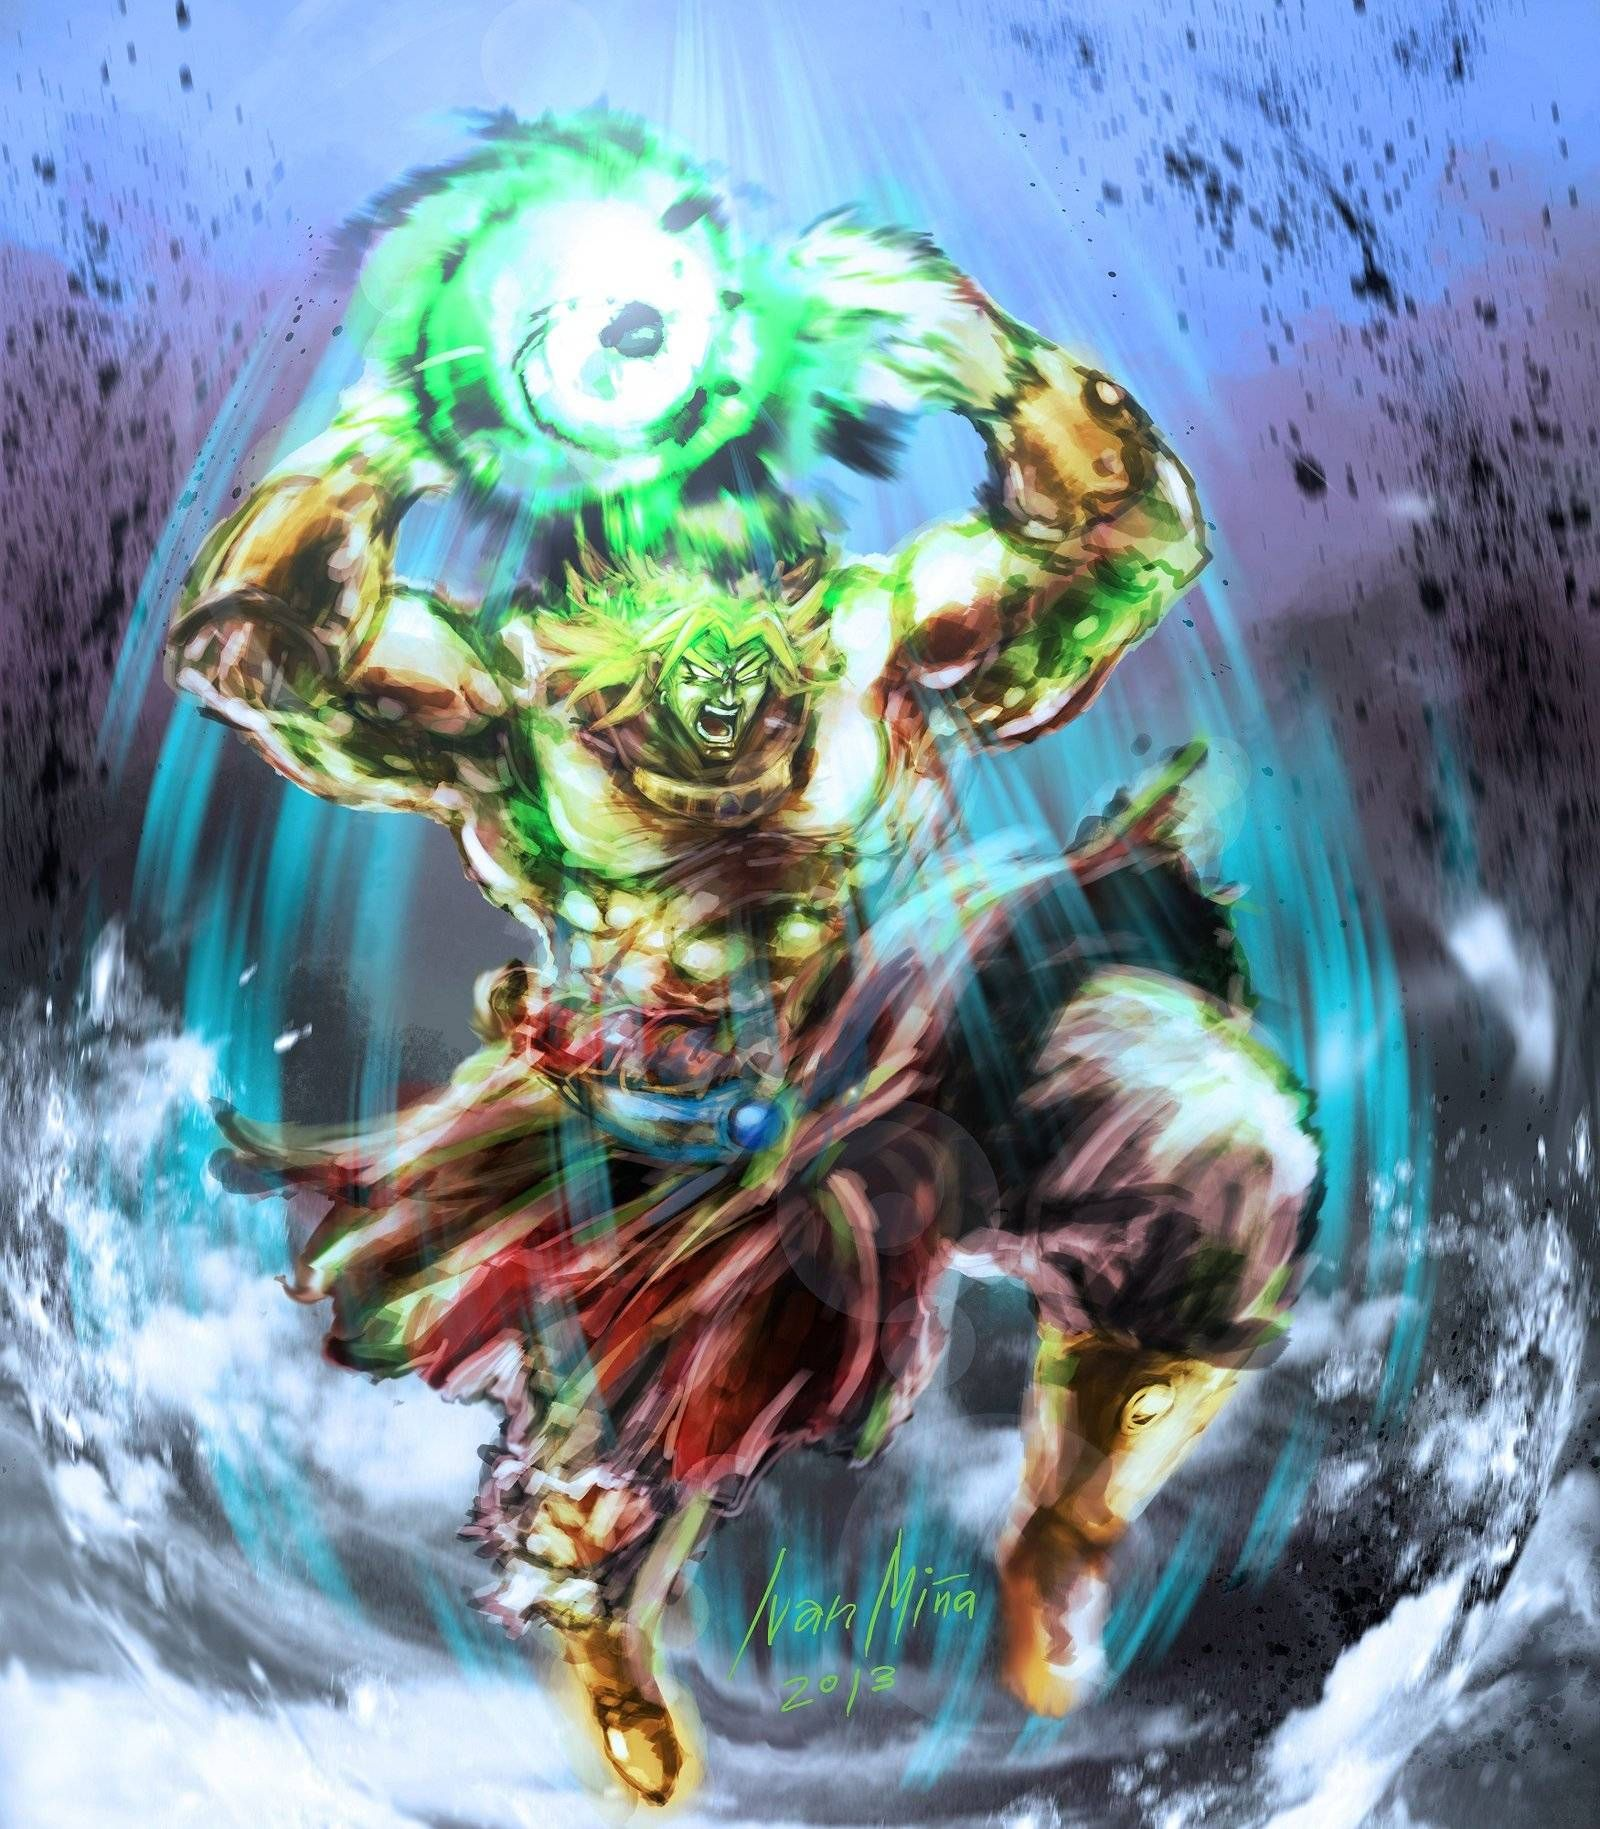 Dragon Ball Z Broly Wallpaper Mobile 3yakp Dragonball Dragon Ball Broly Wallpaper Phone 2980932 Hd Wallpaper Backgrounds Download